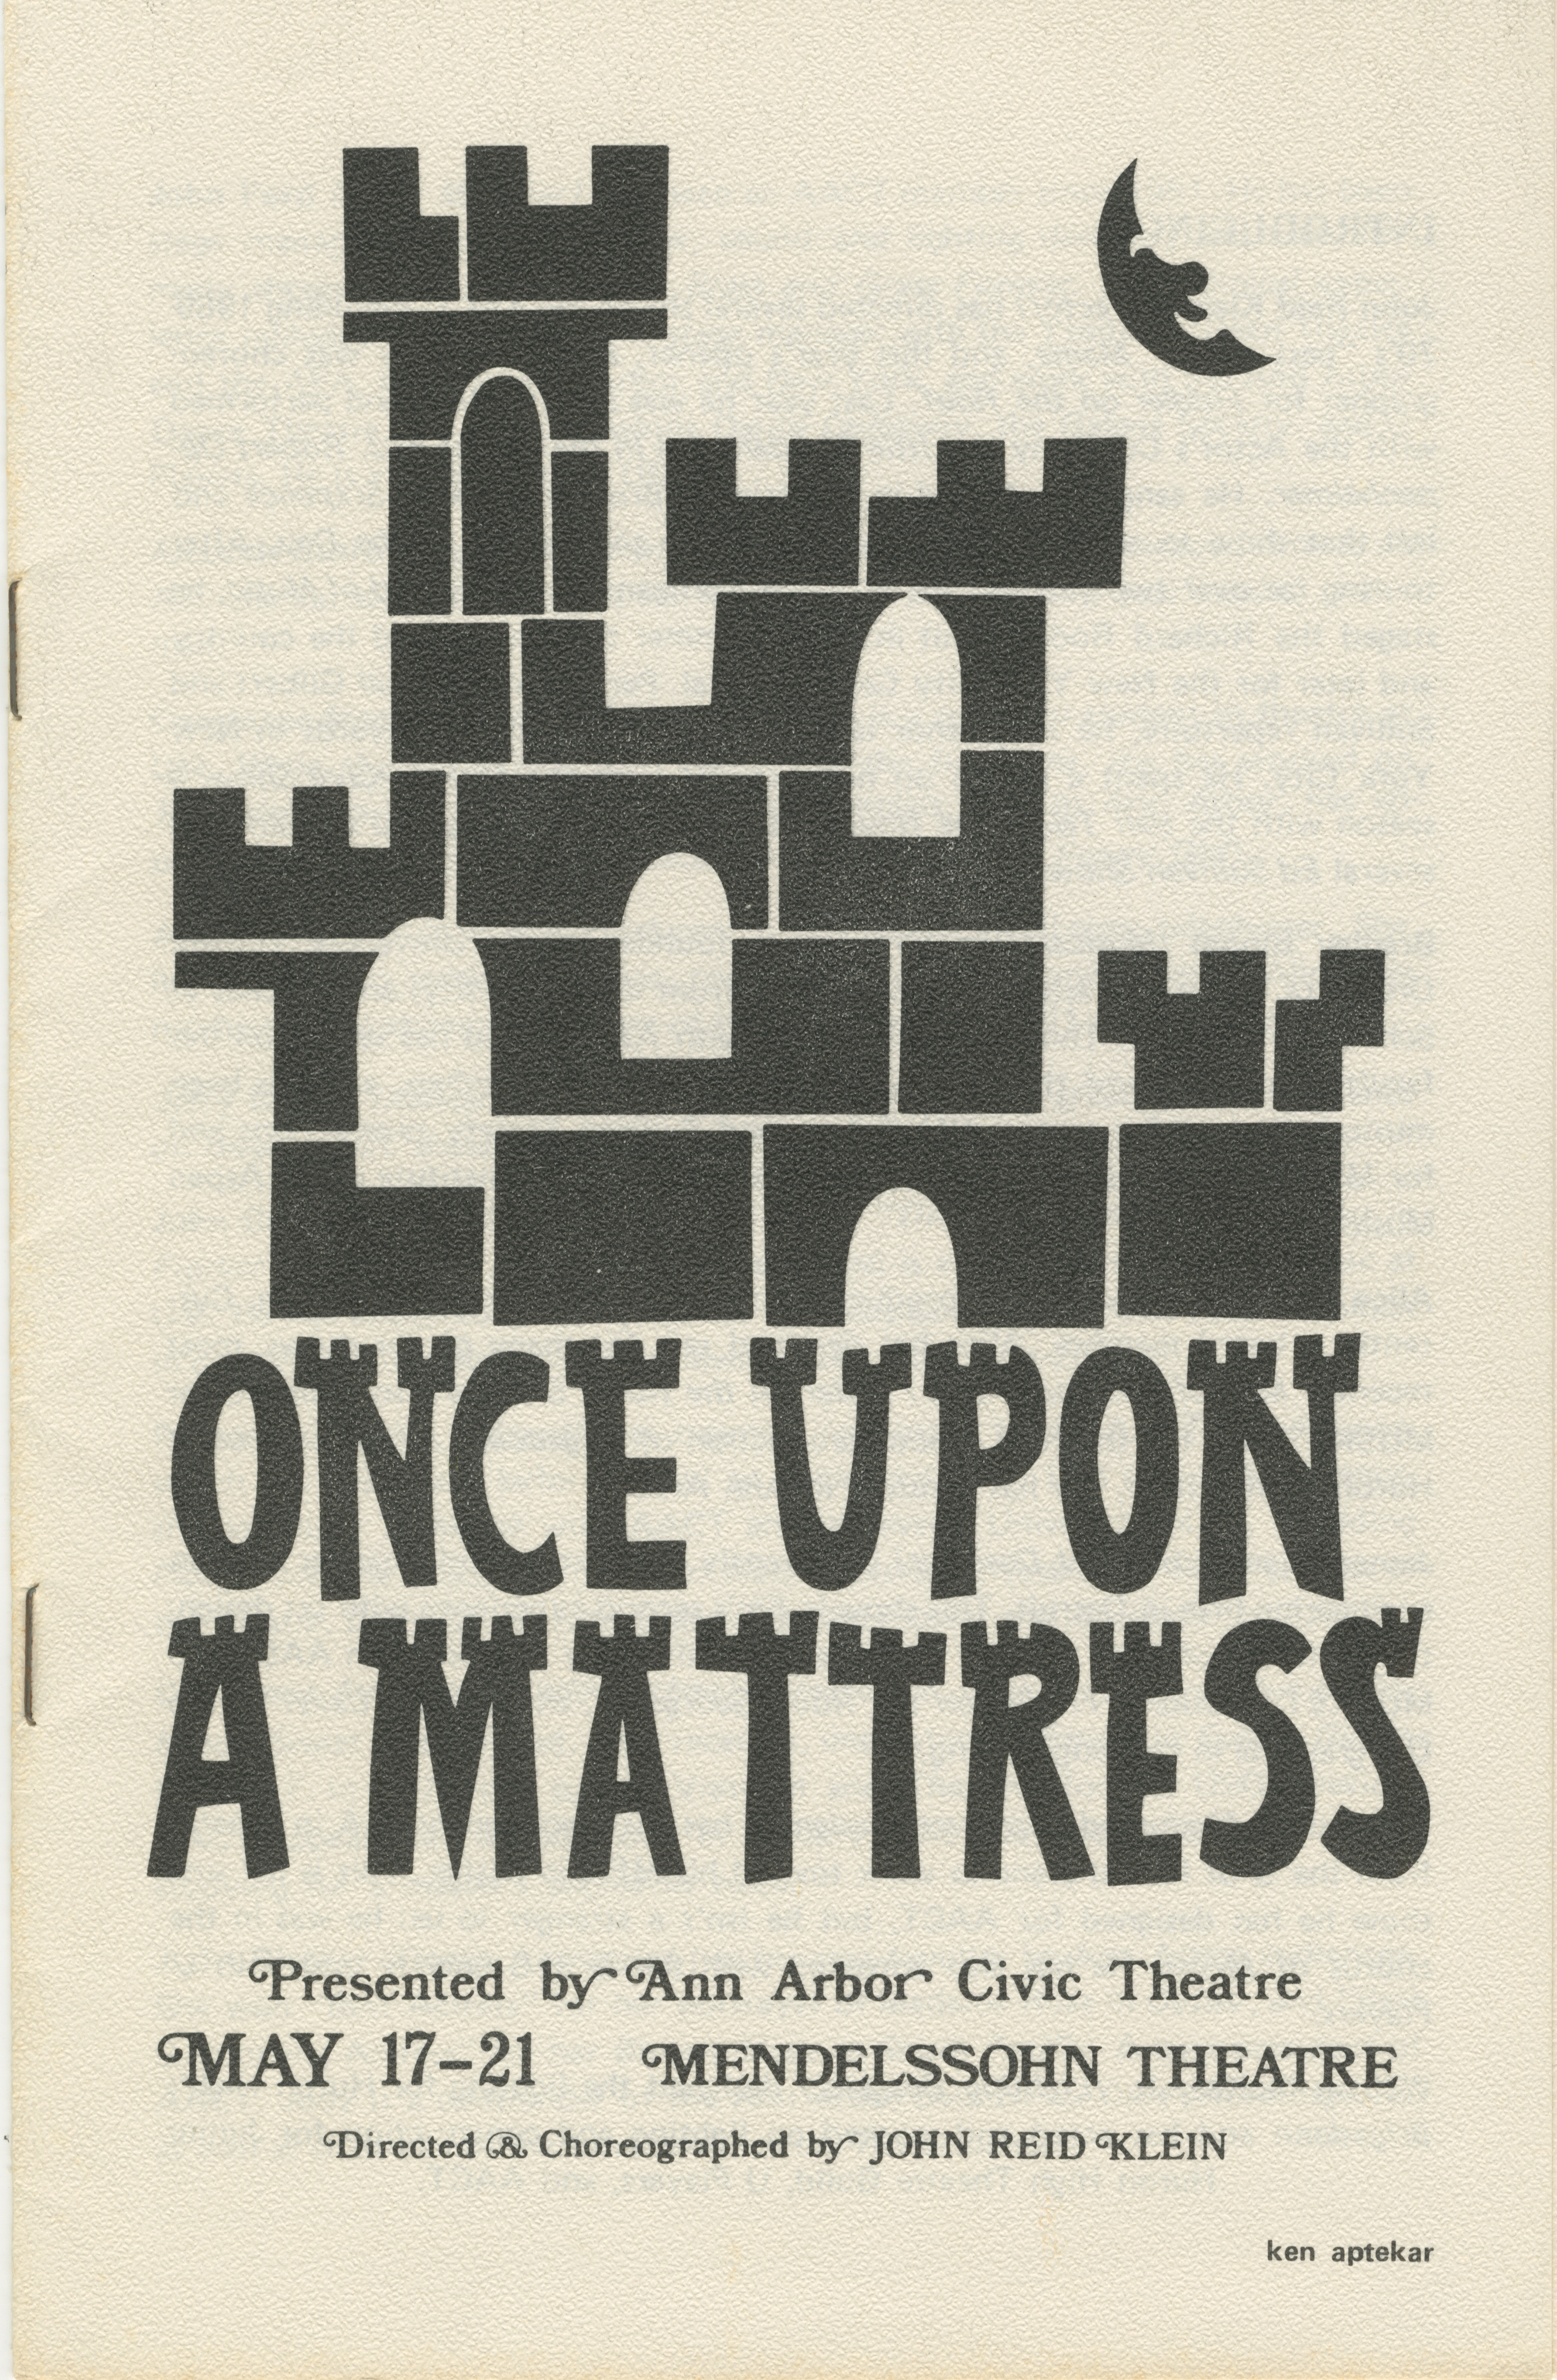 Ann Arbor Civic Theatre Program: Once Upon A Mattress, May 17, 1972